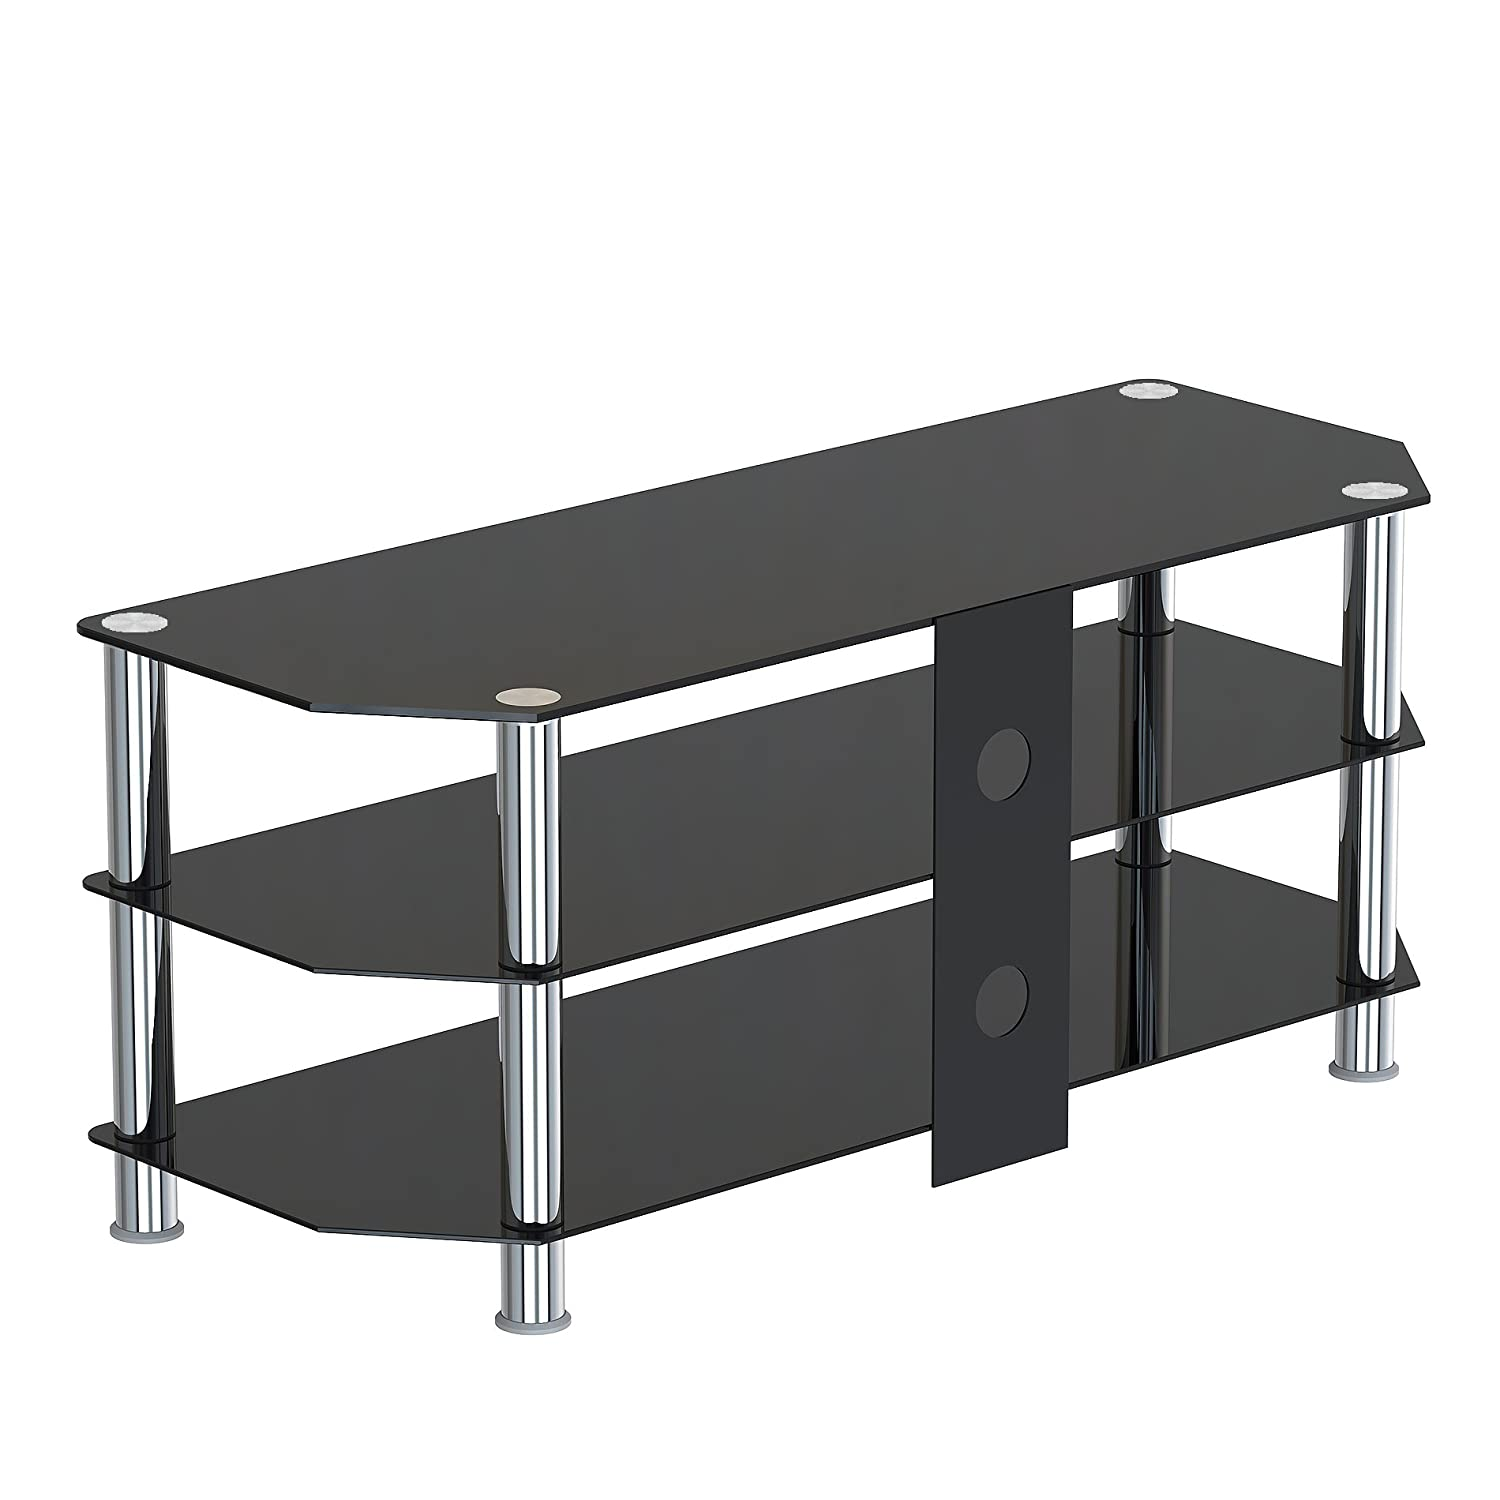 1home 120 Cm GT5 Glass TV Stand For 32 70 Inch Plasma: Amazon.de: Elektronik